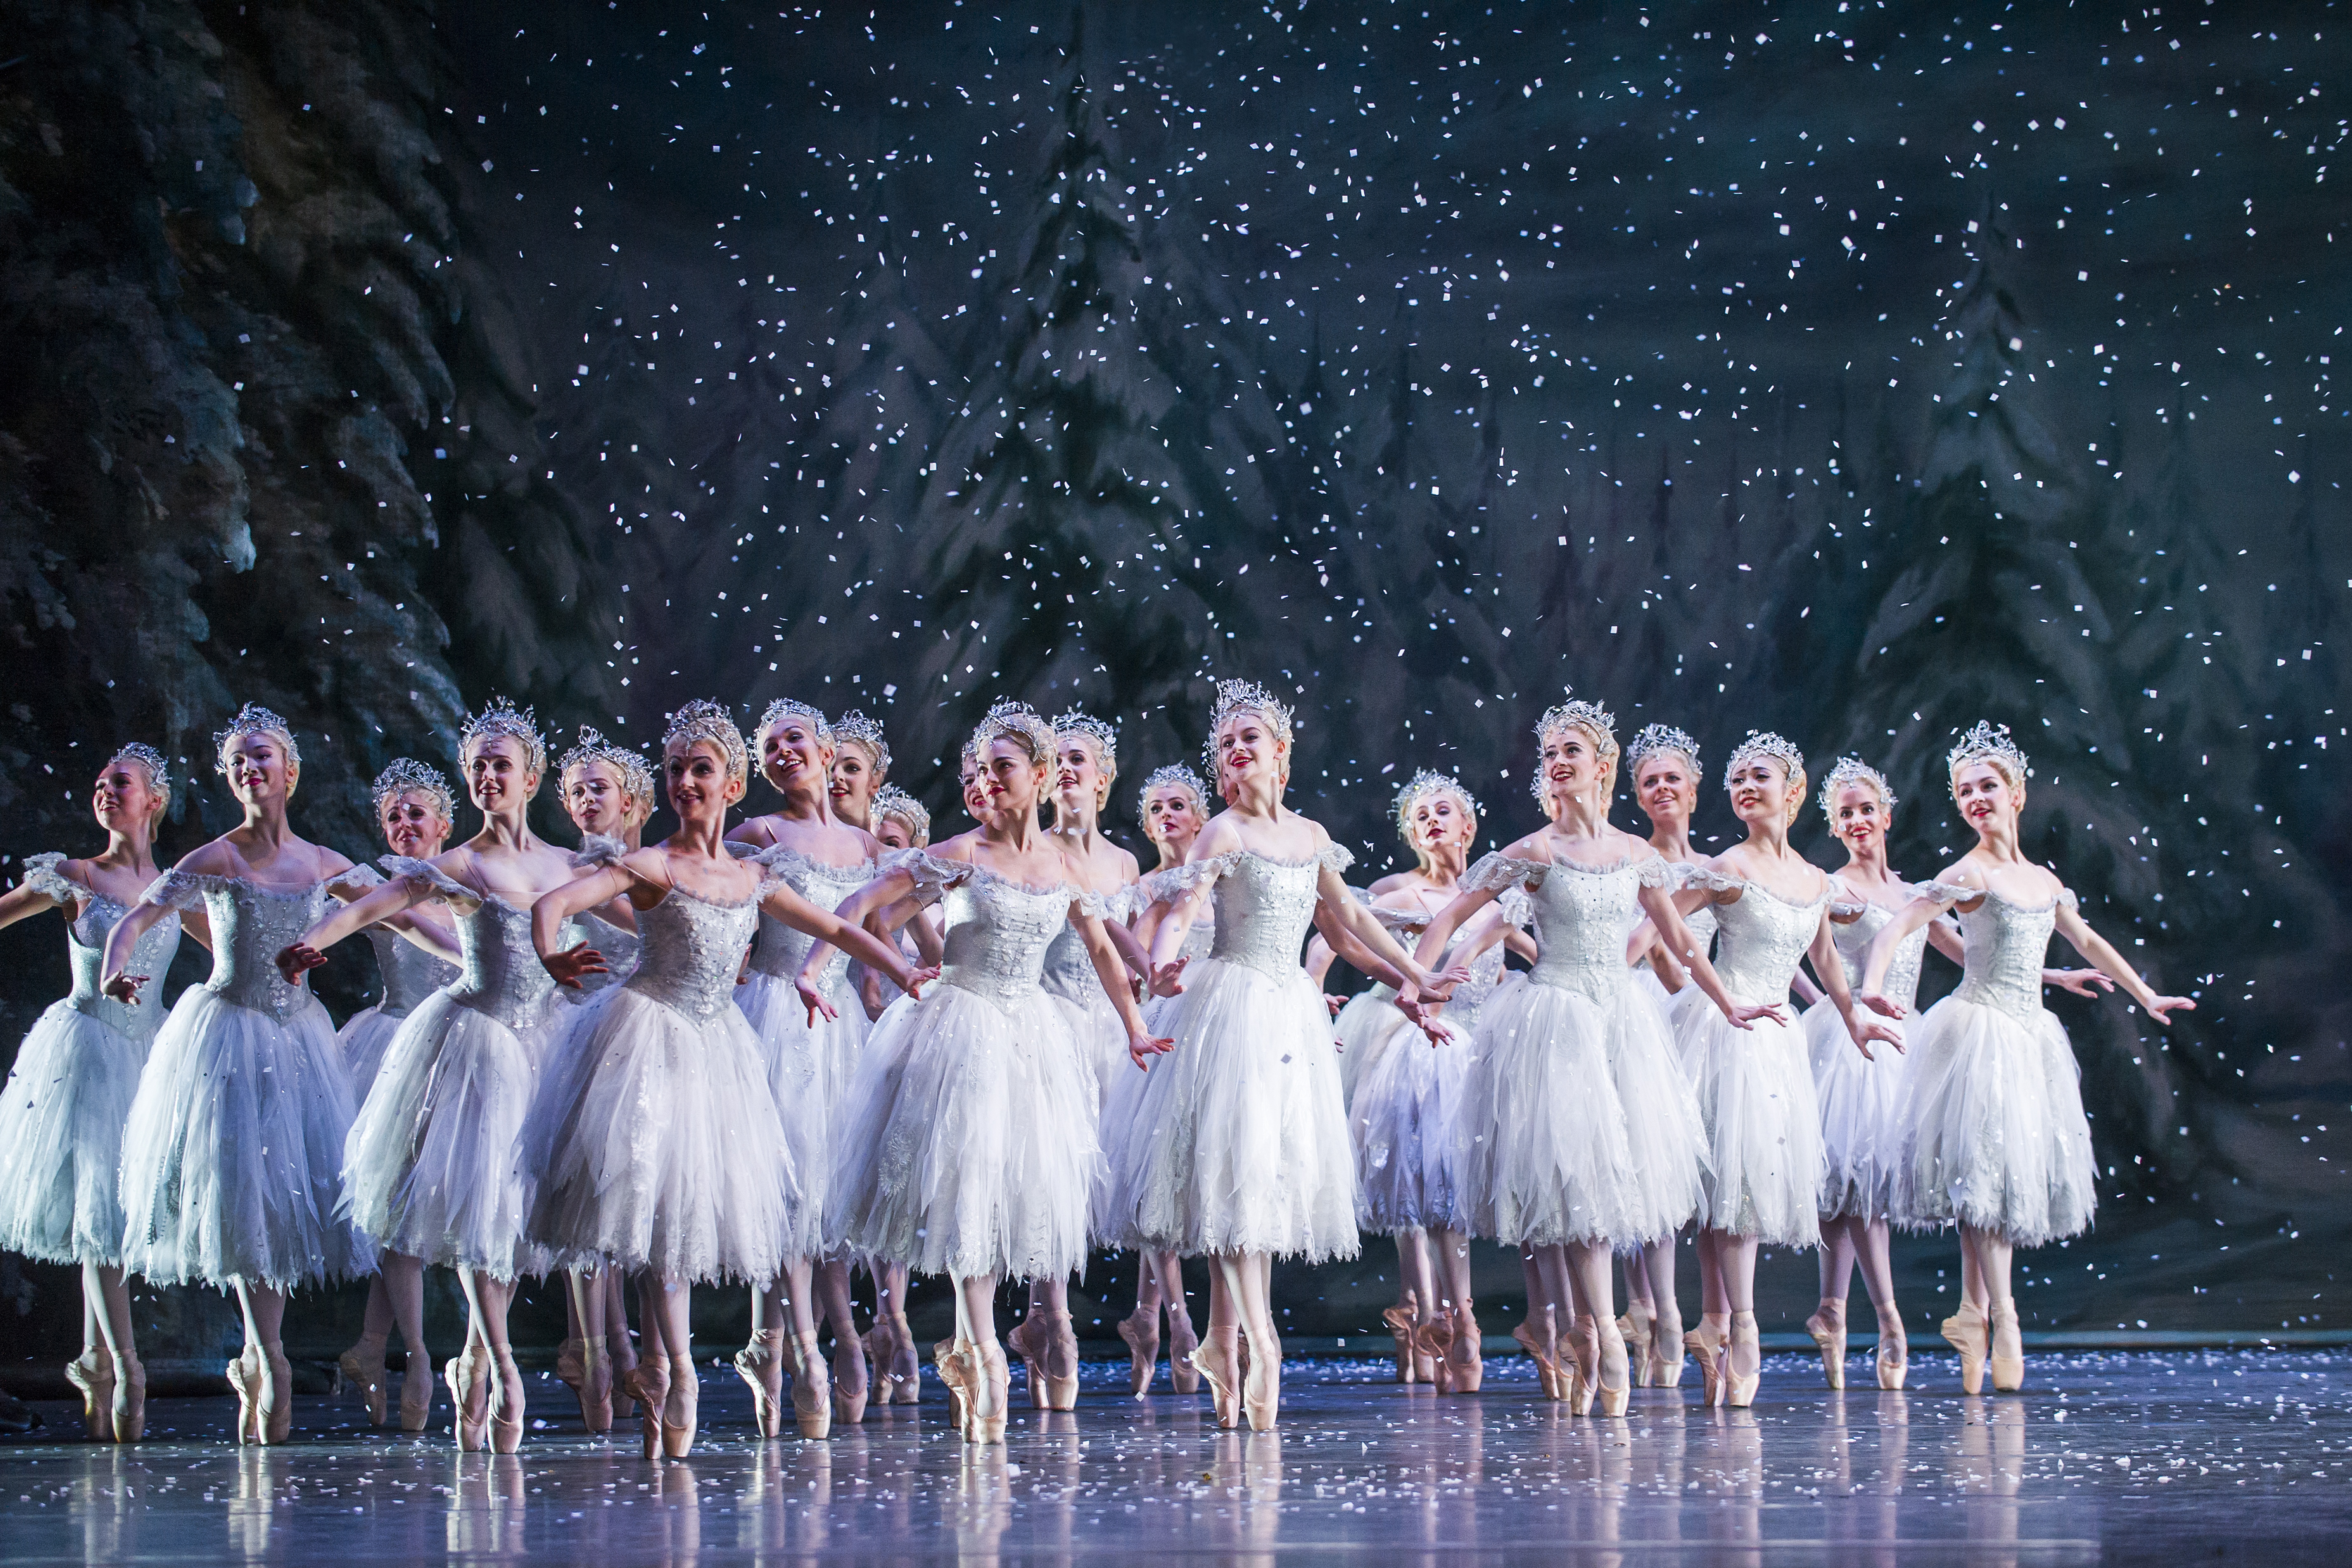 The Nutcracker - Royal Opera House 19/20